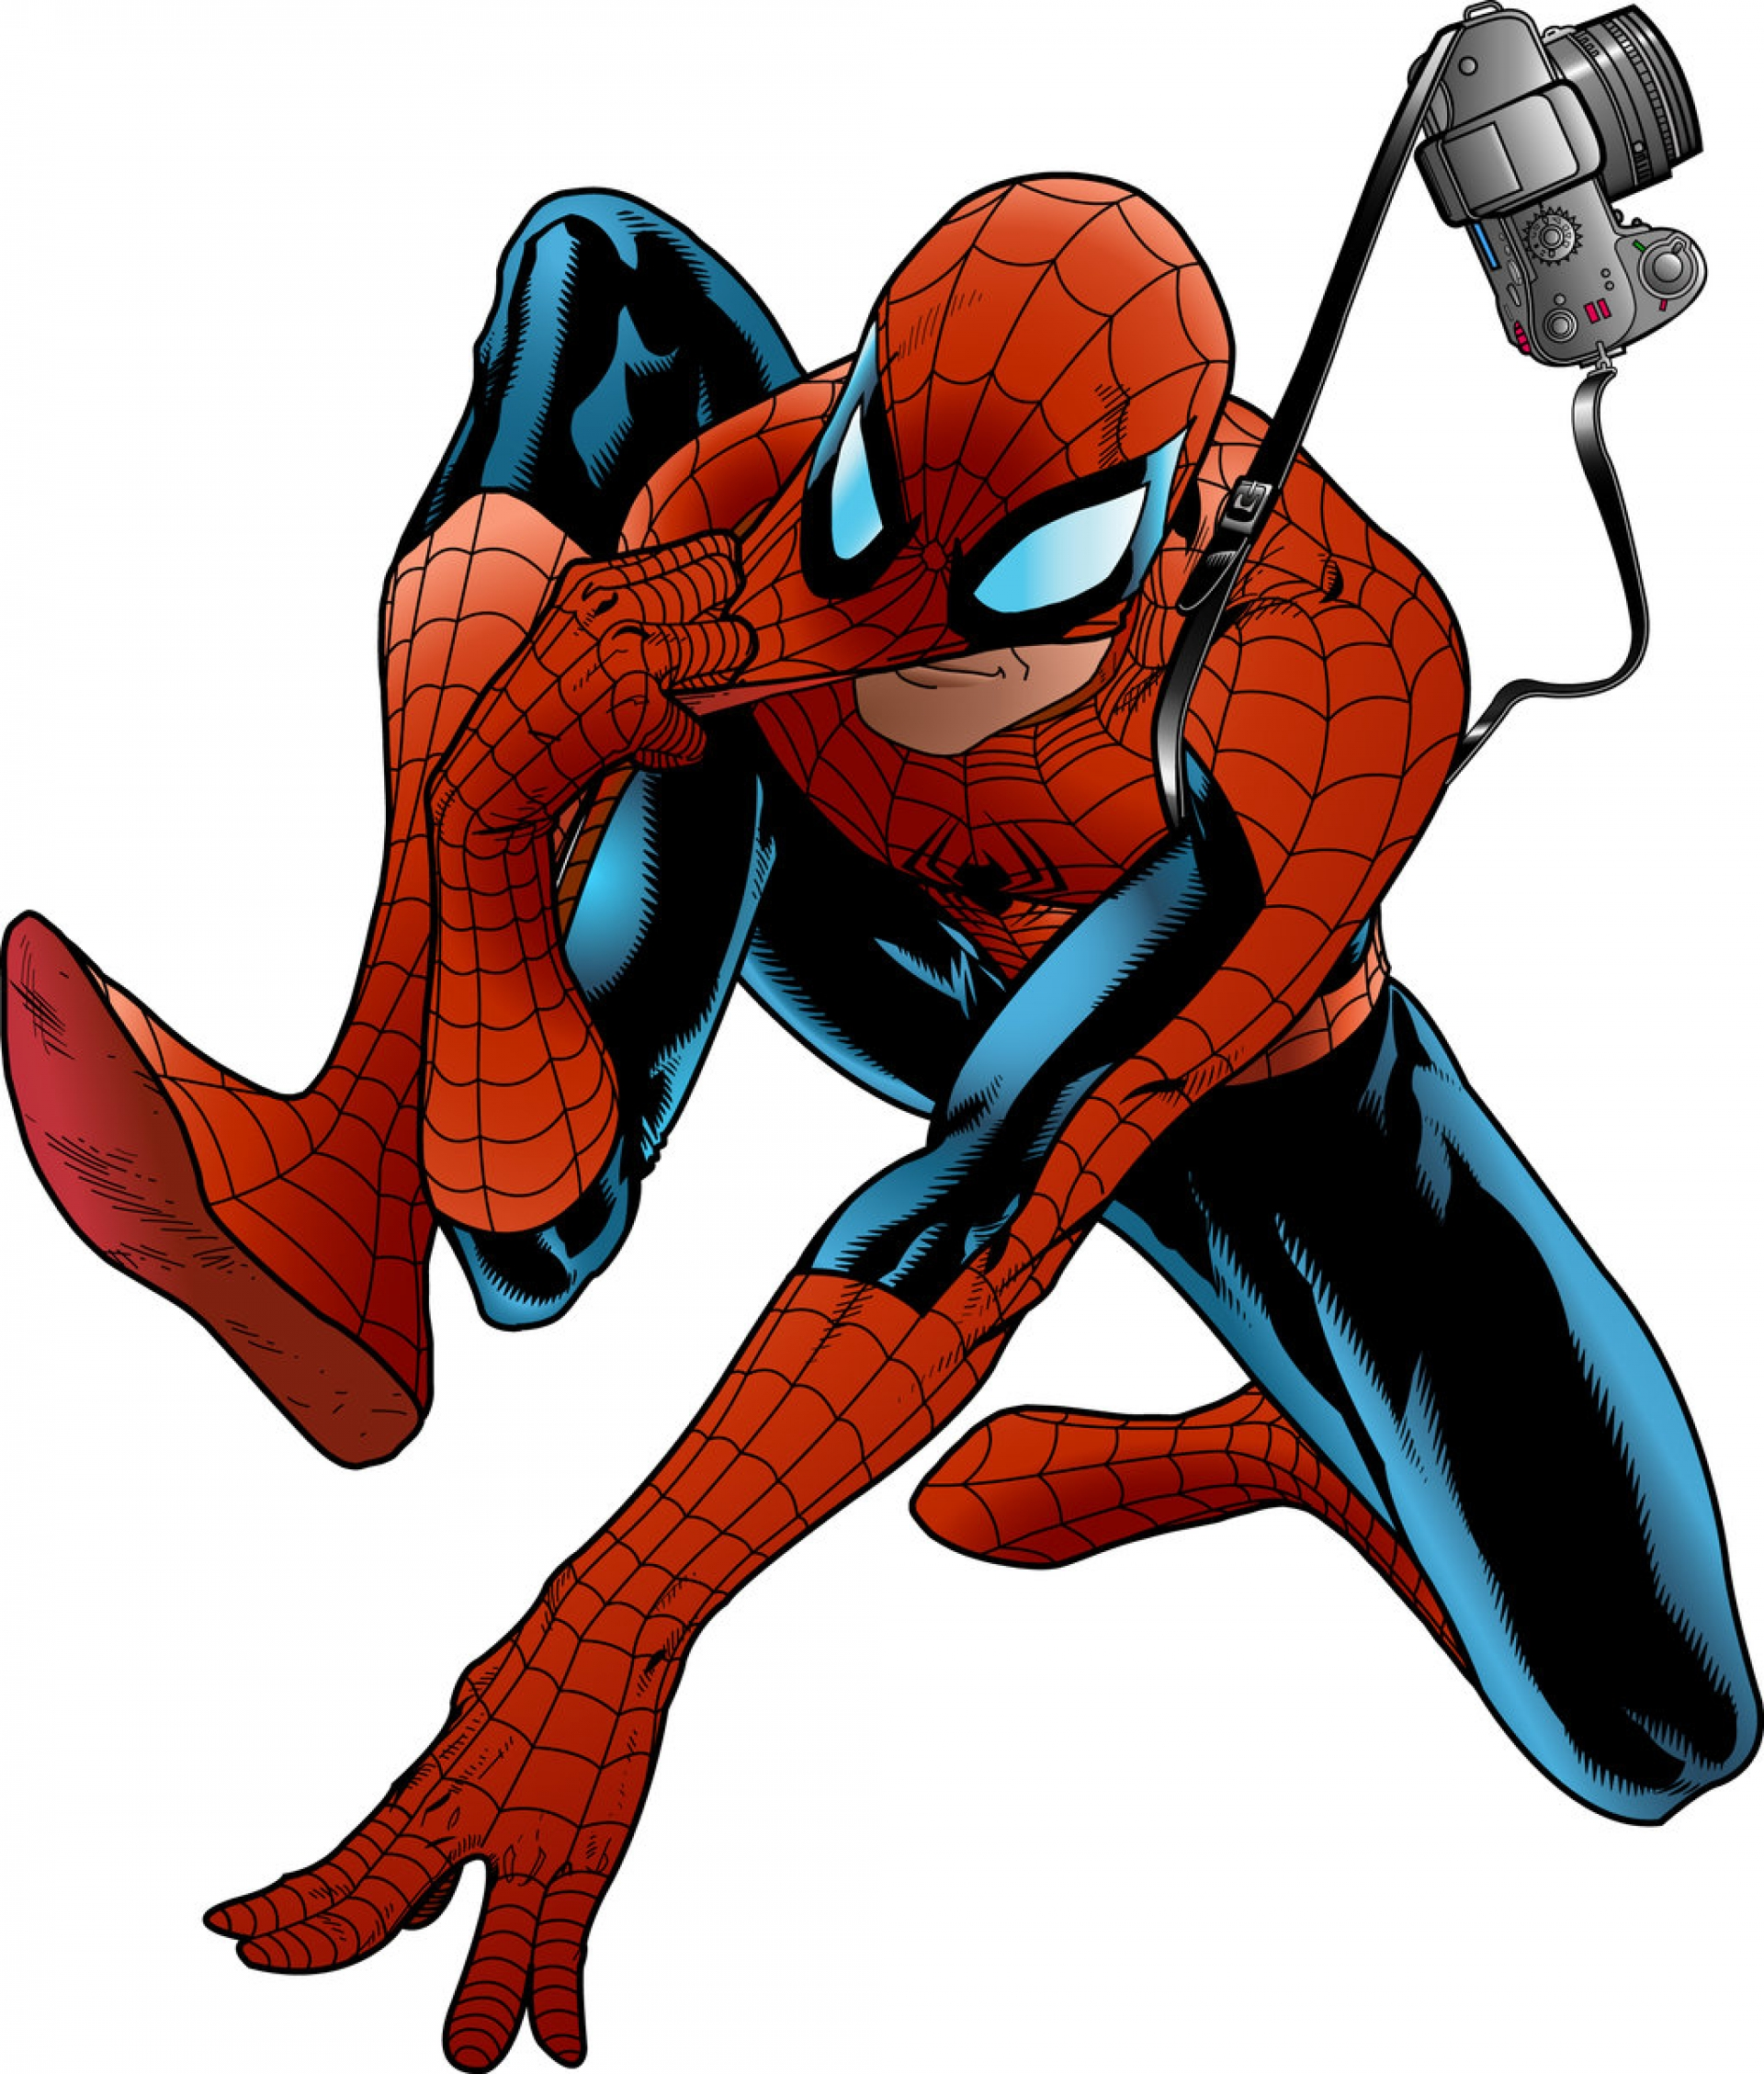 Free spiderman clipart clipart best - Free spiderman cartoons ...